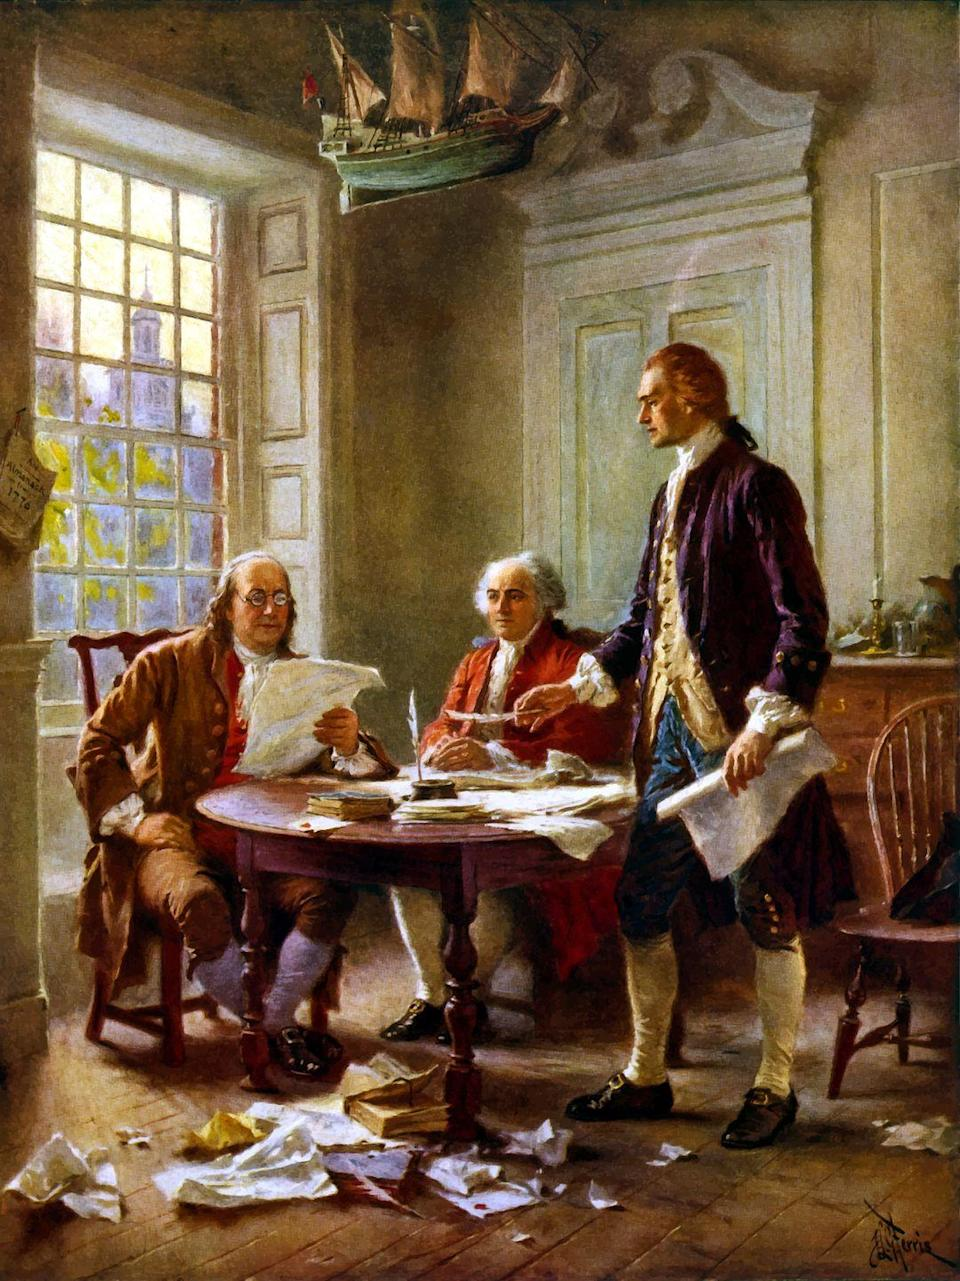 """<p>On July 4, 1826, 50 years after the Declaration of Independence was finalized, former U.S. presidents <a href=""""https://constitutioncenter.org/blog/three-presidents-die-on-july-4th-just-a-coincidence"""" rel=""""nofollow noopener"""" target=""""_blank"""" data-ylk=""""slk:Thomas Jefferson and John Adams reportedly died"""" class=""""link rapid-noclick-resp"""">Thomas Jefferson and John Adams reportedly died</a> just hours apart. Exactly five years later, James Monroe reportedly became the third U.S. president to die on the 4th of July. <br></p>"""